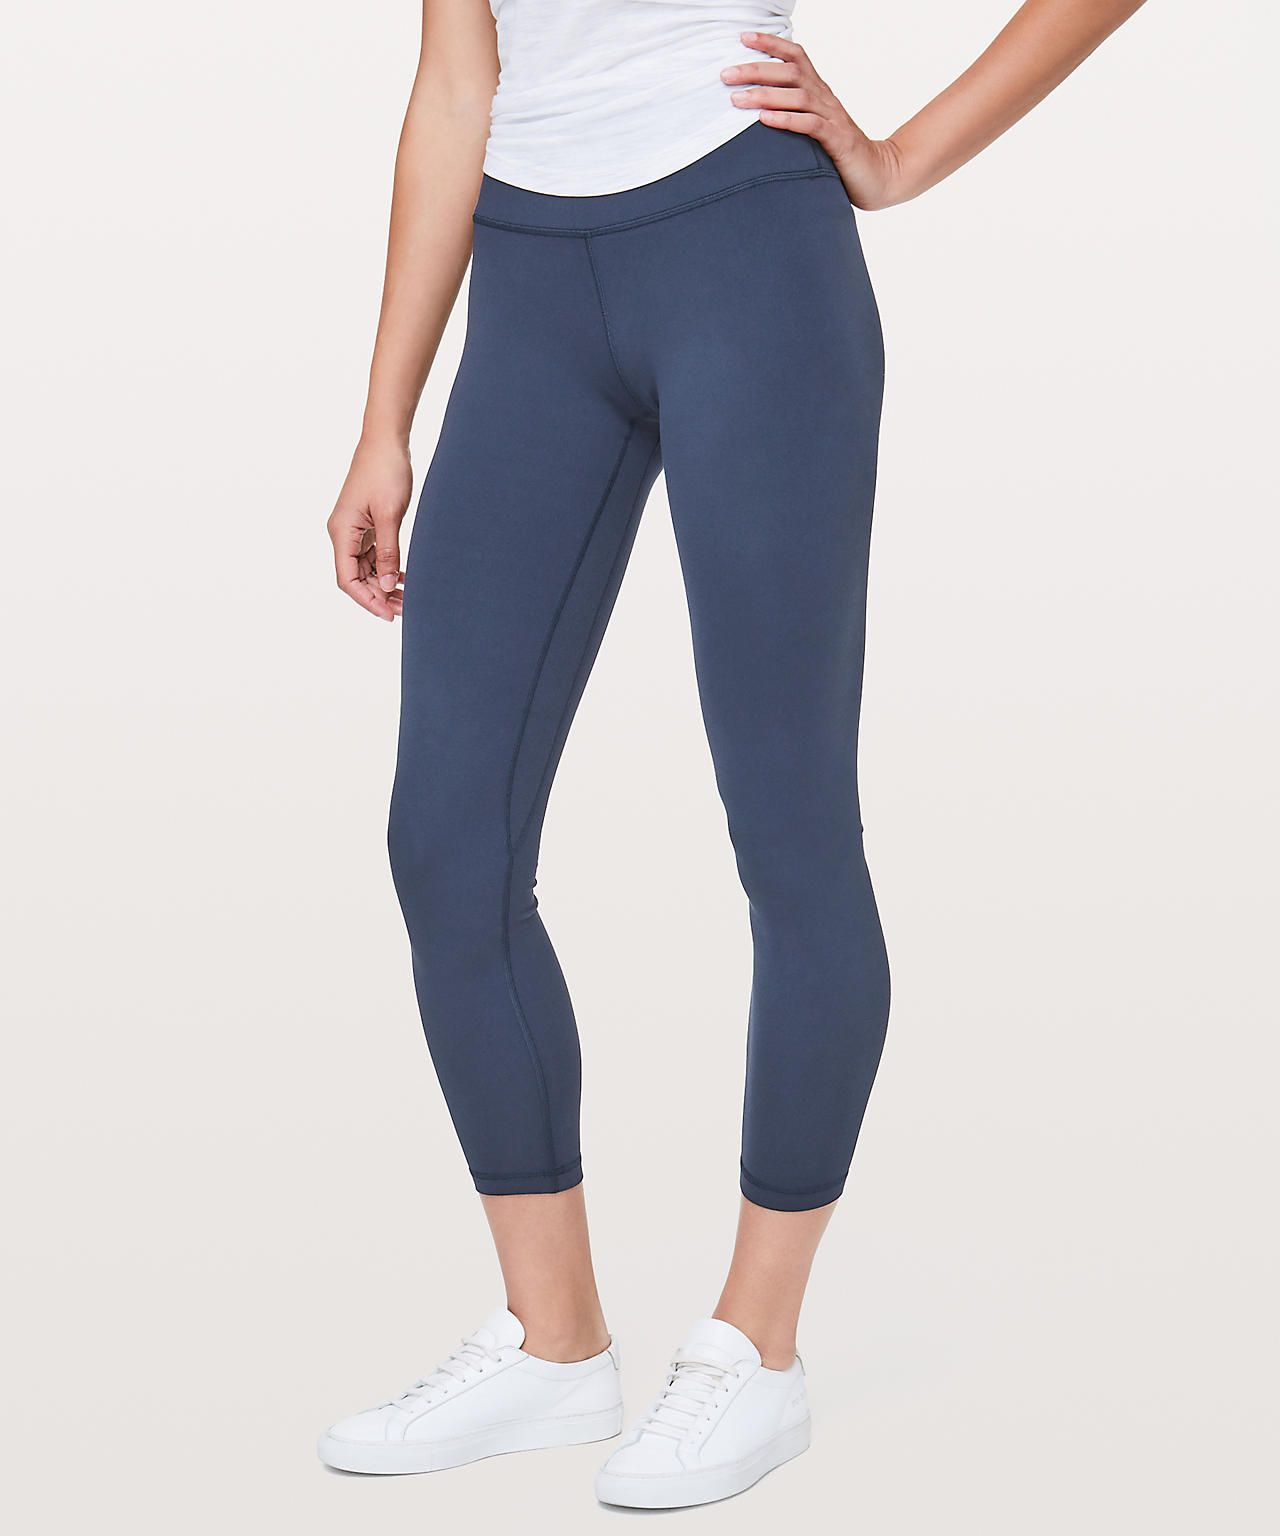 73a5093f9ec4d Lululemon Align Pant II 25 | Workout | Pants, Yoga pants, Pants for ...